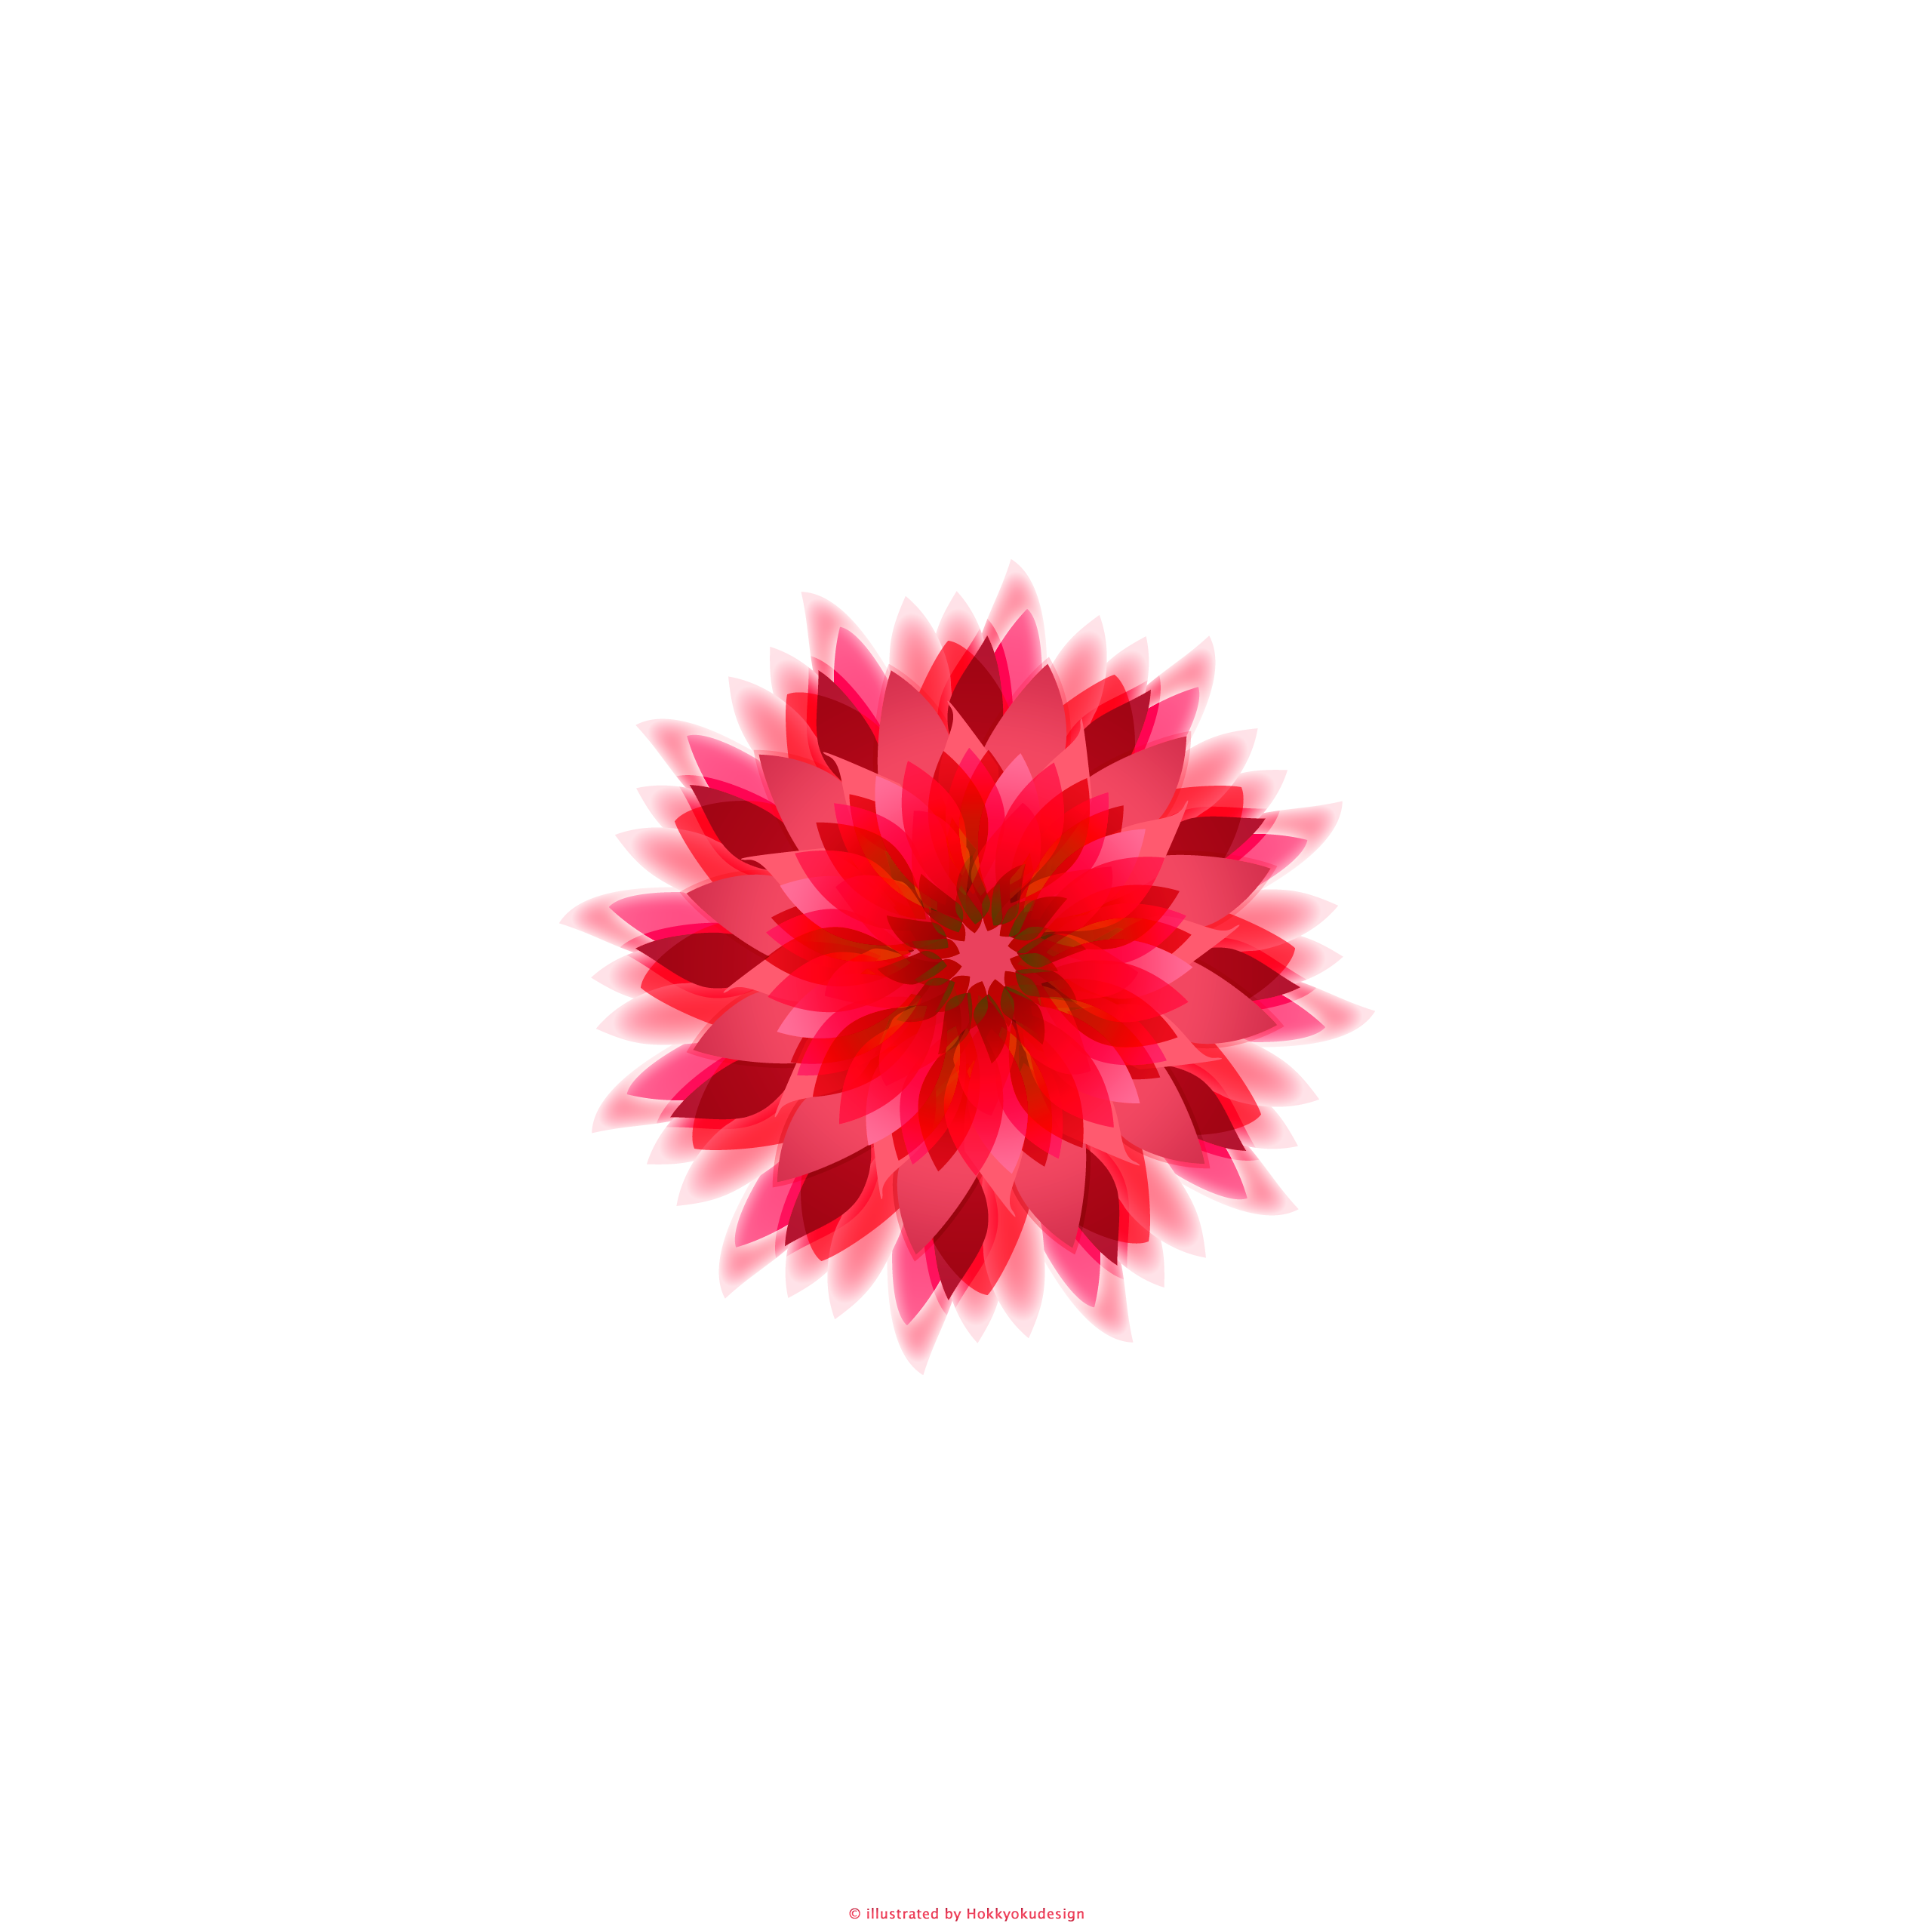 Ios壁紙 Iphone6 Plus Red Flower With White Ios8 Iphone6 Flower